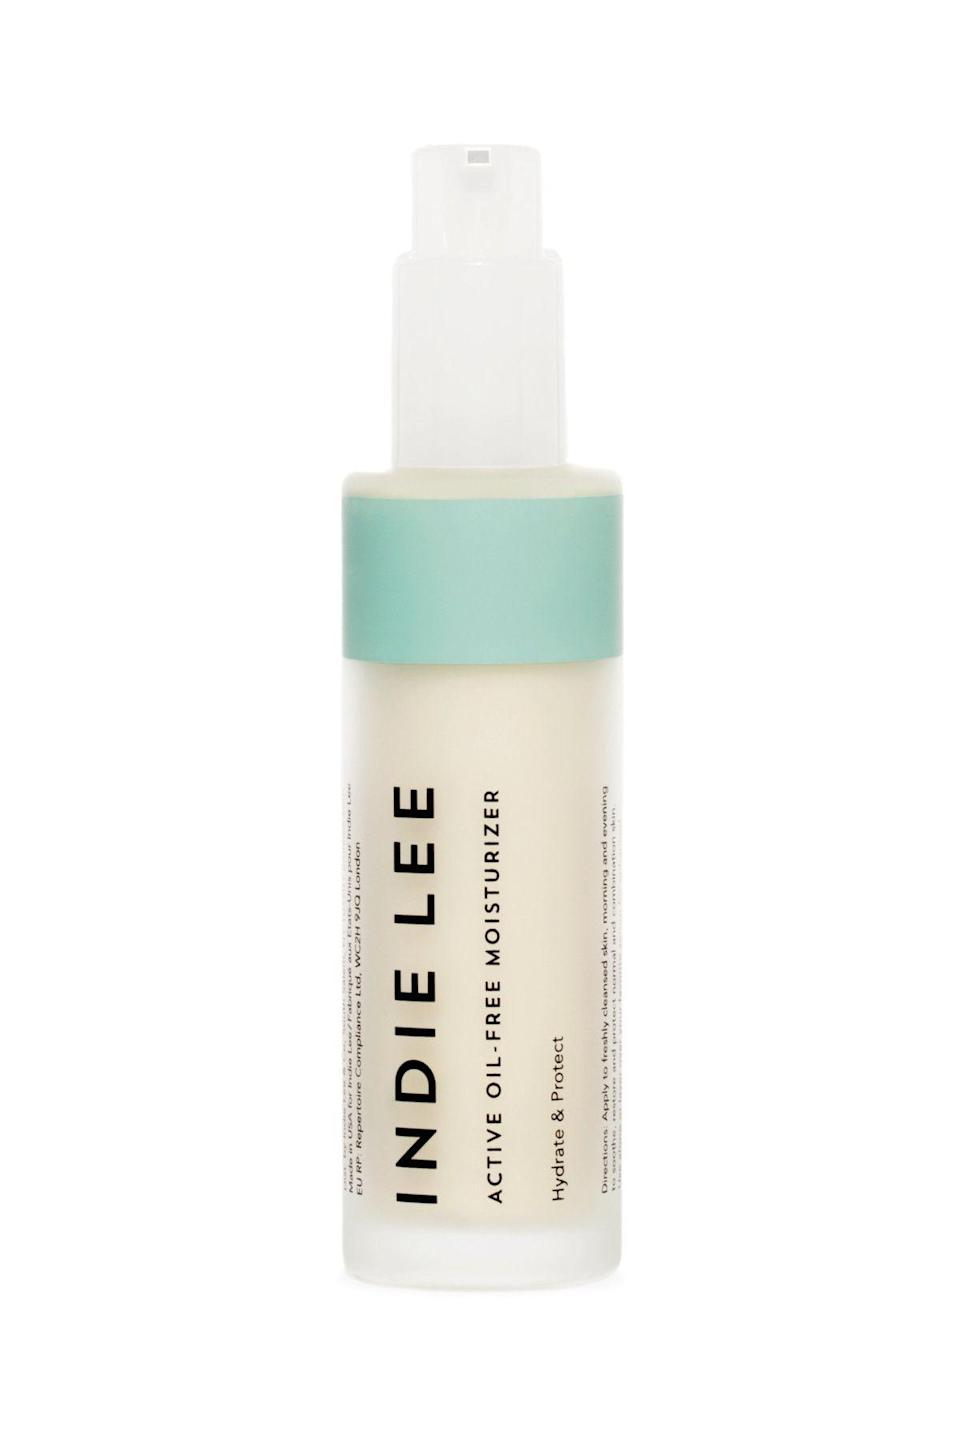 """<p><strong>Indie Lee</strong></p><p>dermstore.com</p><p><strong>$48.00</strong></p><p><a href=""""https://go.redirectingat.com?id=74968X1596630&url=https%3A%2F%2Fwww.dermstore.com%2Fproduct_Active%2BOil%2BFree%2BMoisturizer%2B_79028.htm&sref=https%3A%2F%2Fwww.marieclaire.com%2Fbeauty%2Fg34399769%2Fbest-oil-free-moisturizers%2F"""" rel=""""nofollow noopener"""" target=""""_blank"""" data-ylk=""""slk:SHOP IT"""" class=""""link rapid-noclick-resp"""">SHOP IT</a></p><p>Just a pump or two of this supremely light option will both hydrate and protect against environmental damages thanks to daisy flower and imortelle extracts that combat free radical degradation.</p>"""